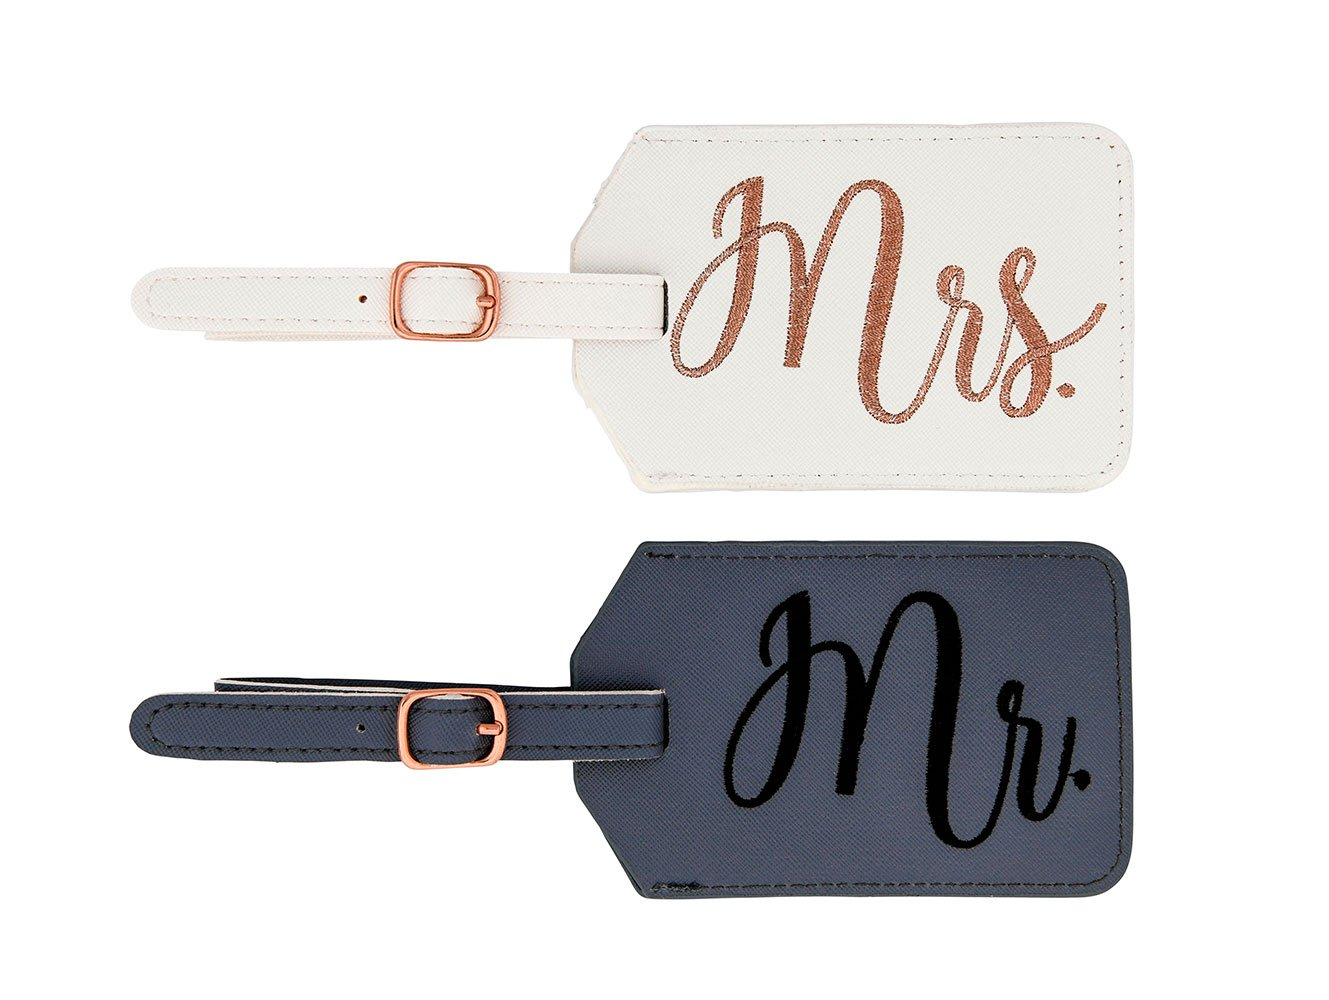 Miamica Mr. and Mrs. Bridal Luggage Tags, Gray and White